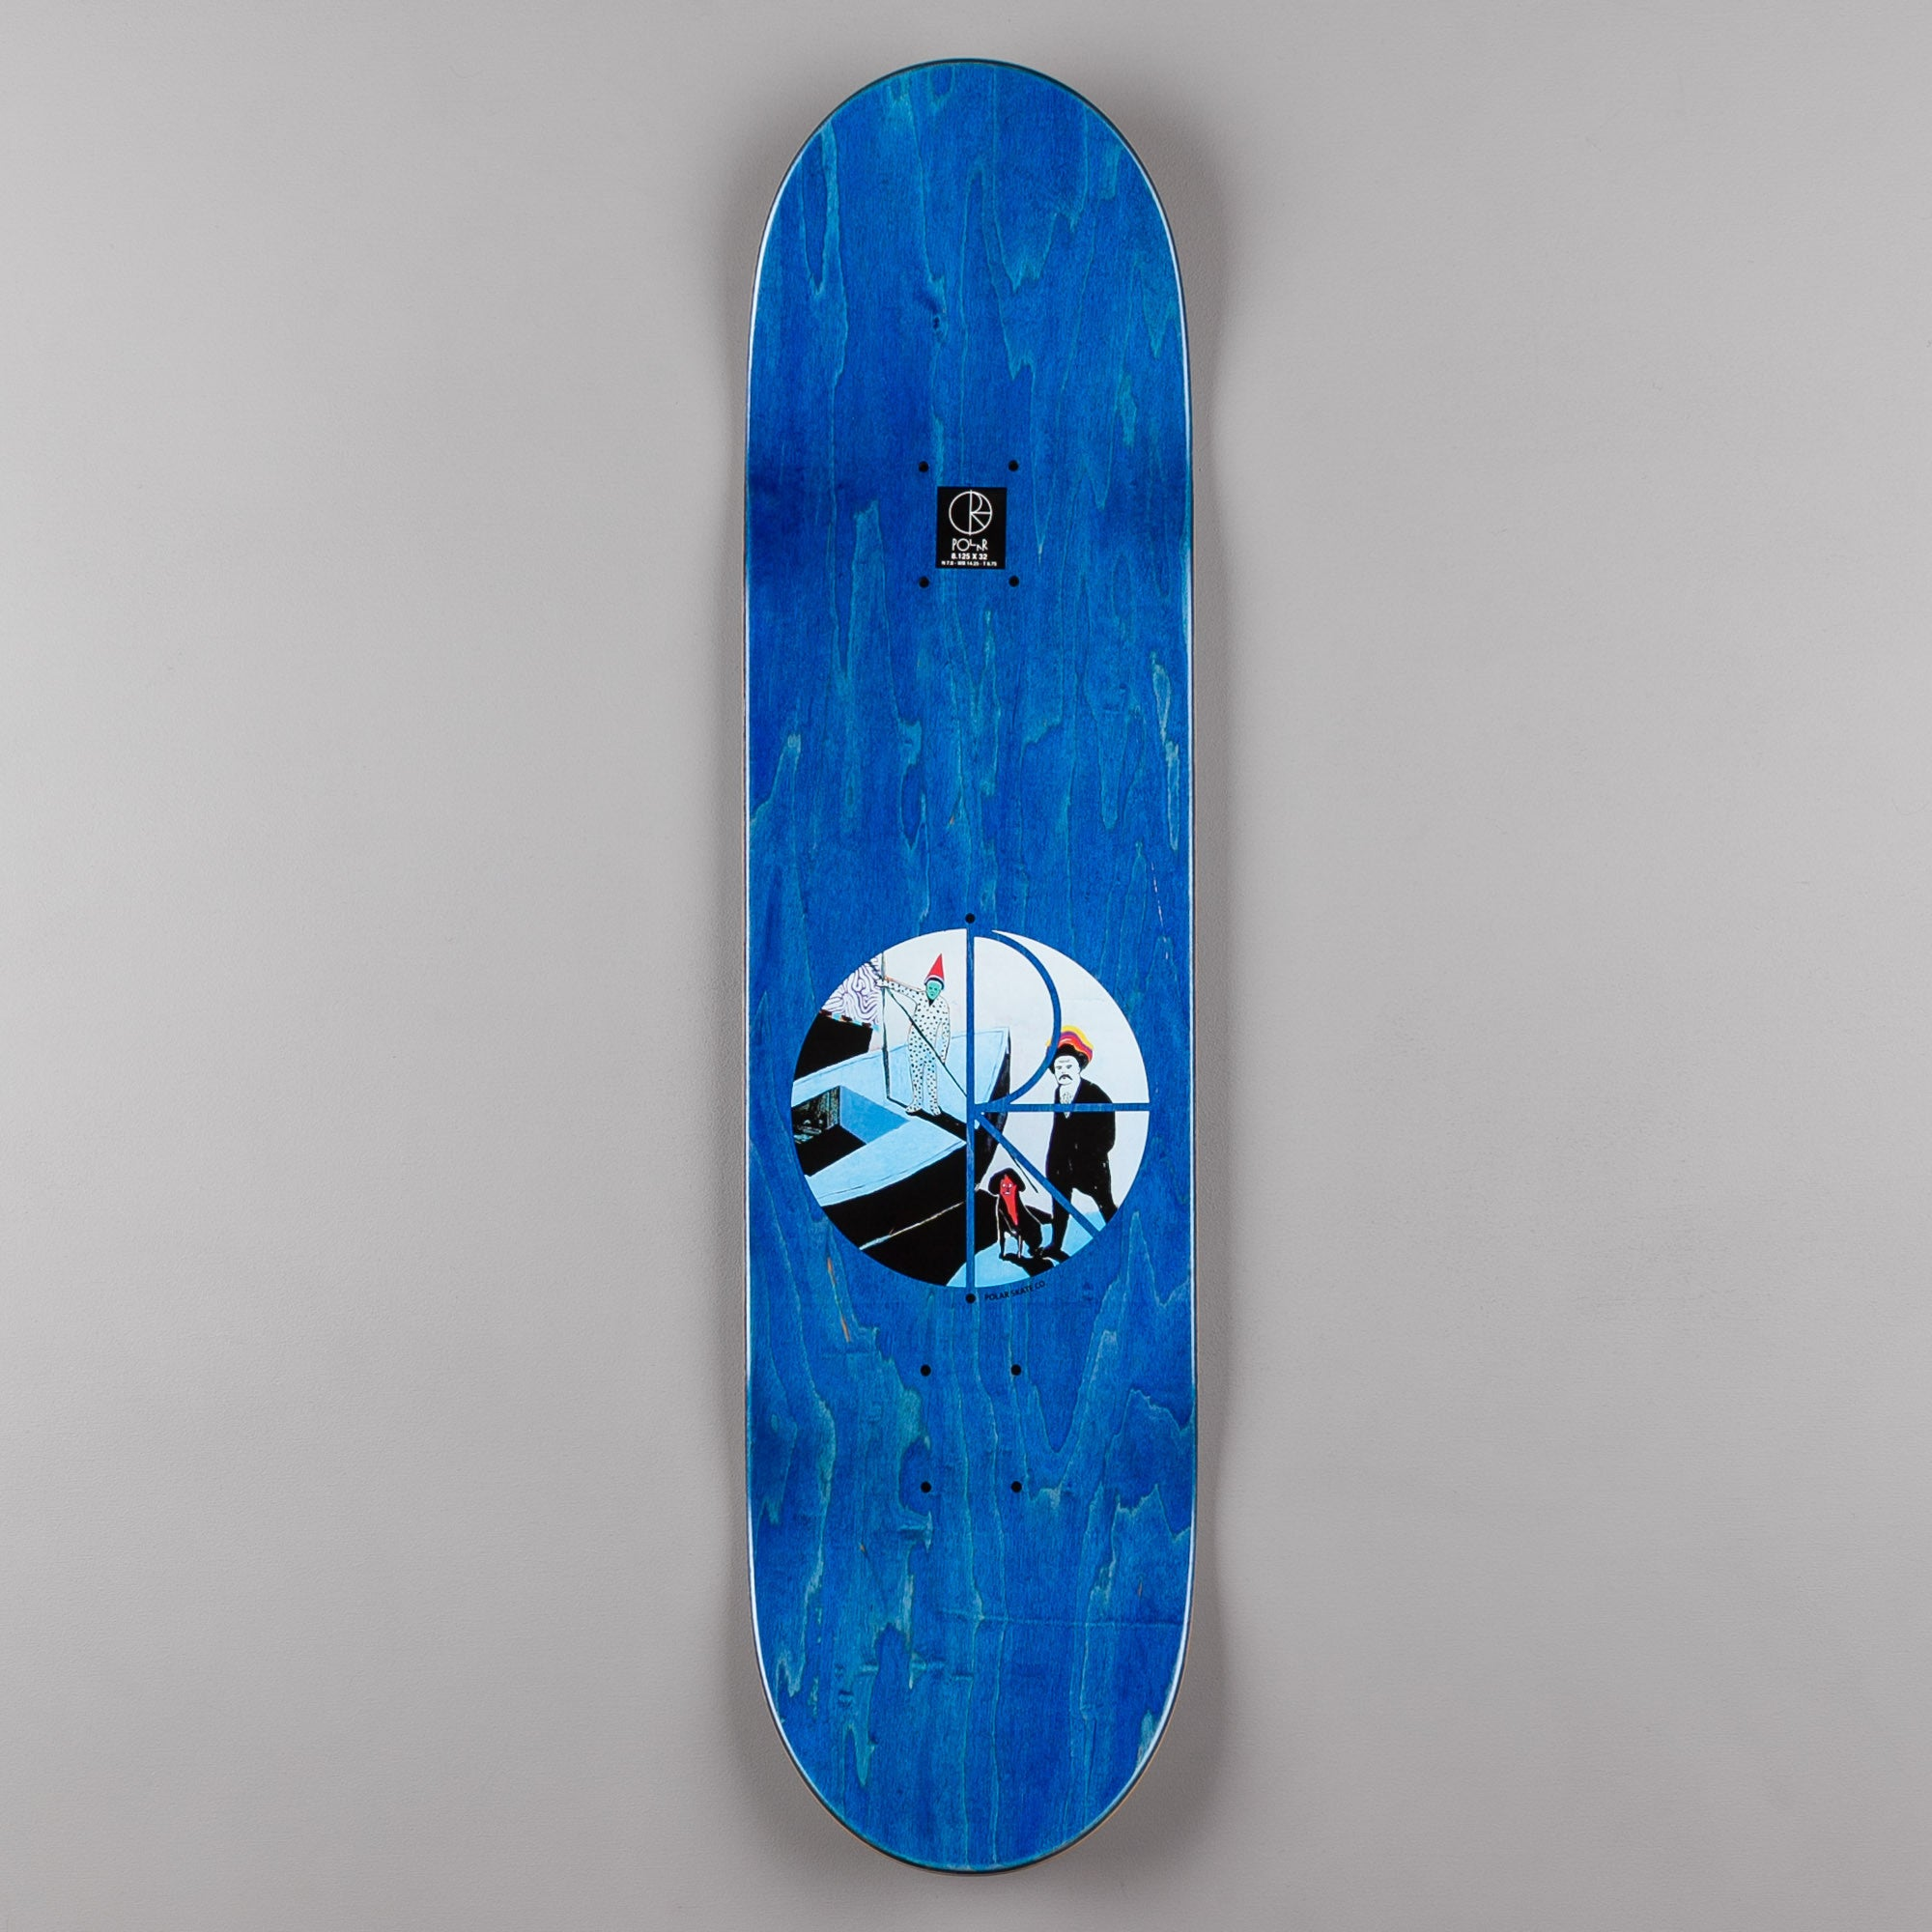 Polar Hjalte Halberg AMTK Rainbow Valley Deck - 8.125""